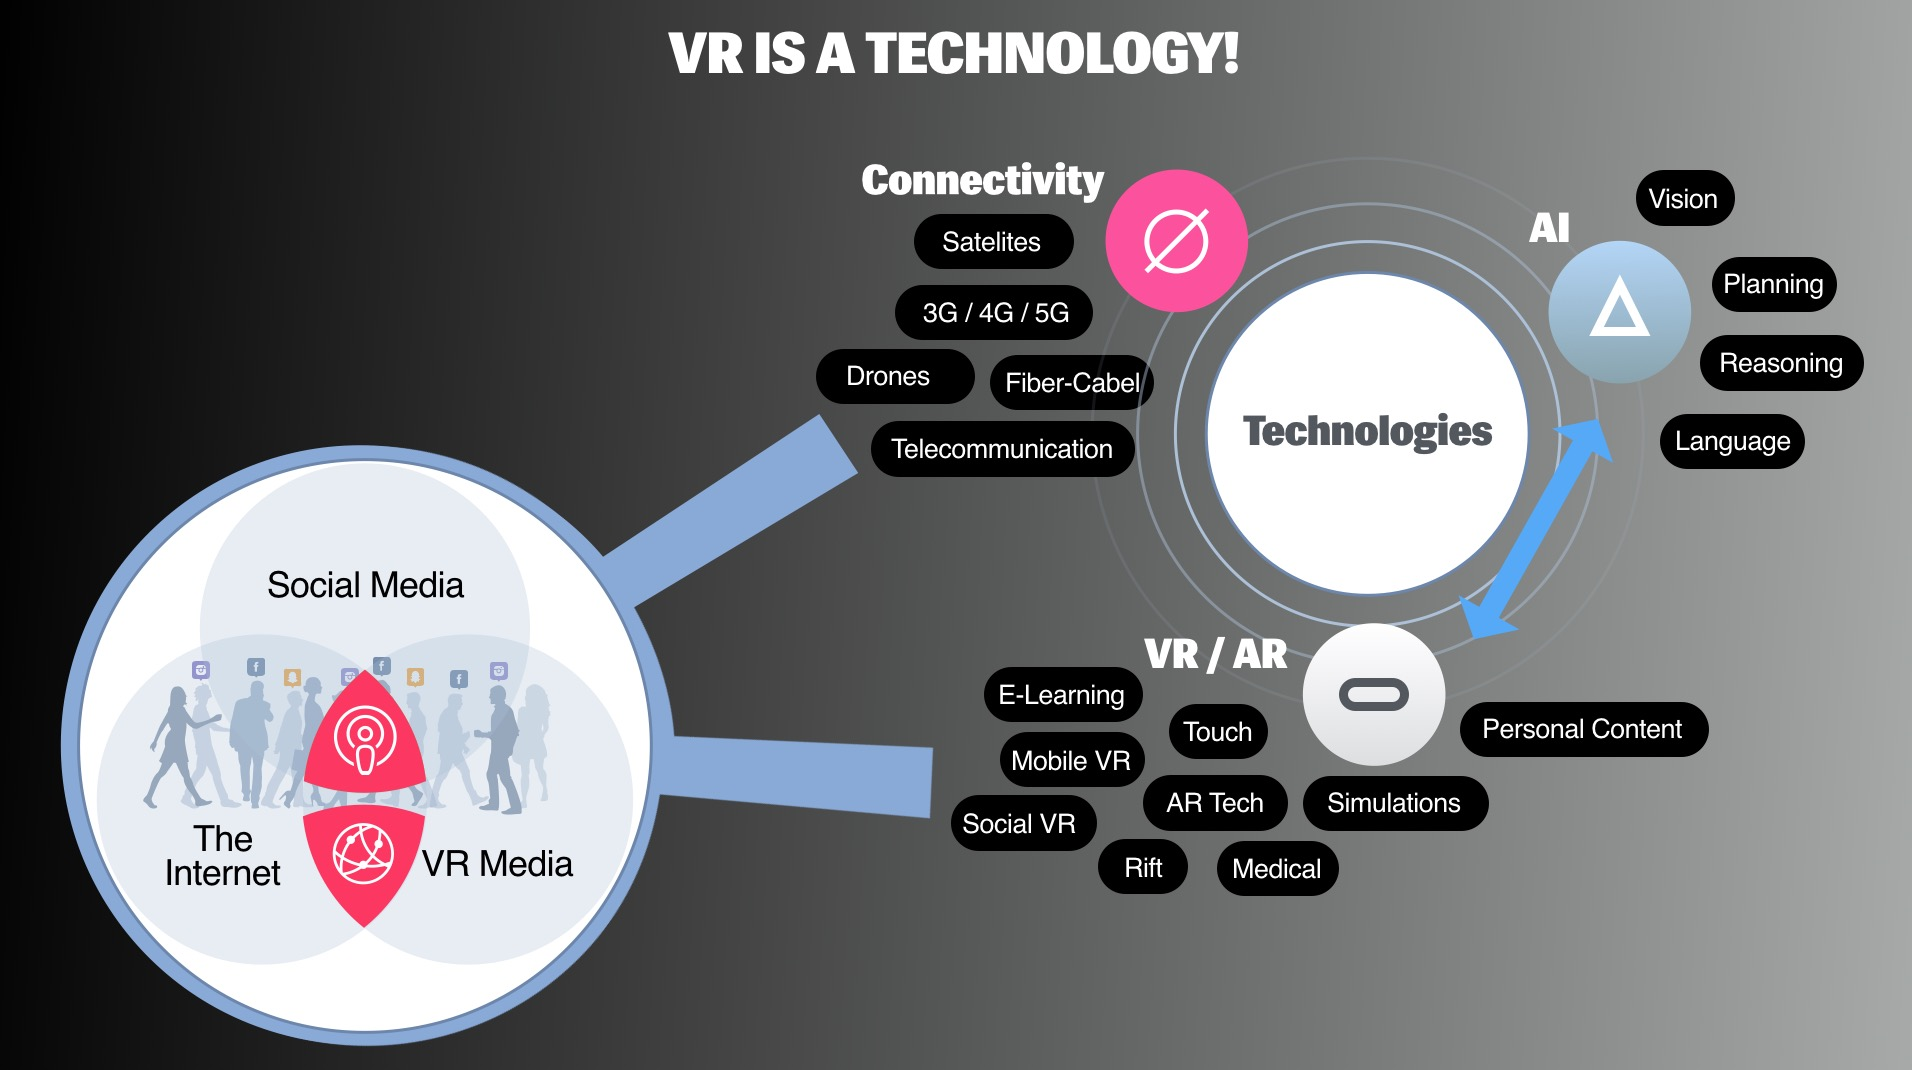 VR is Technology